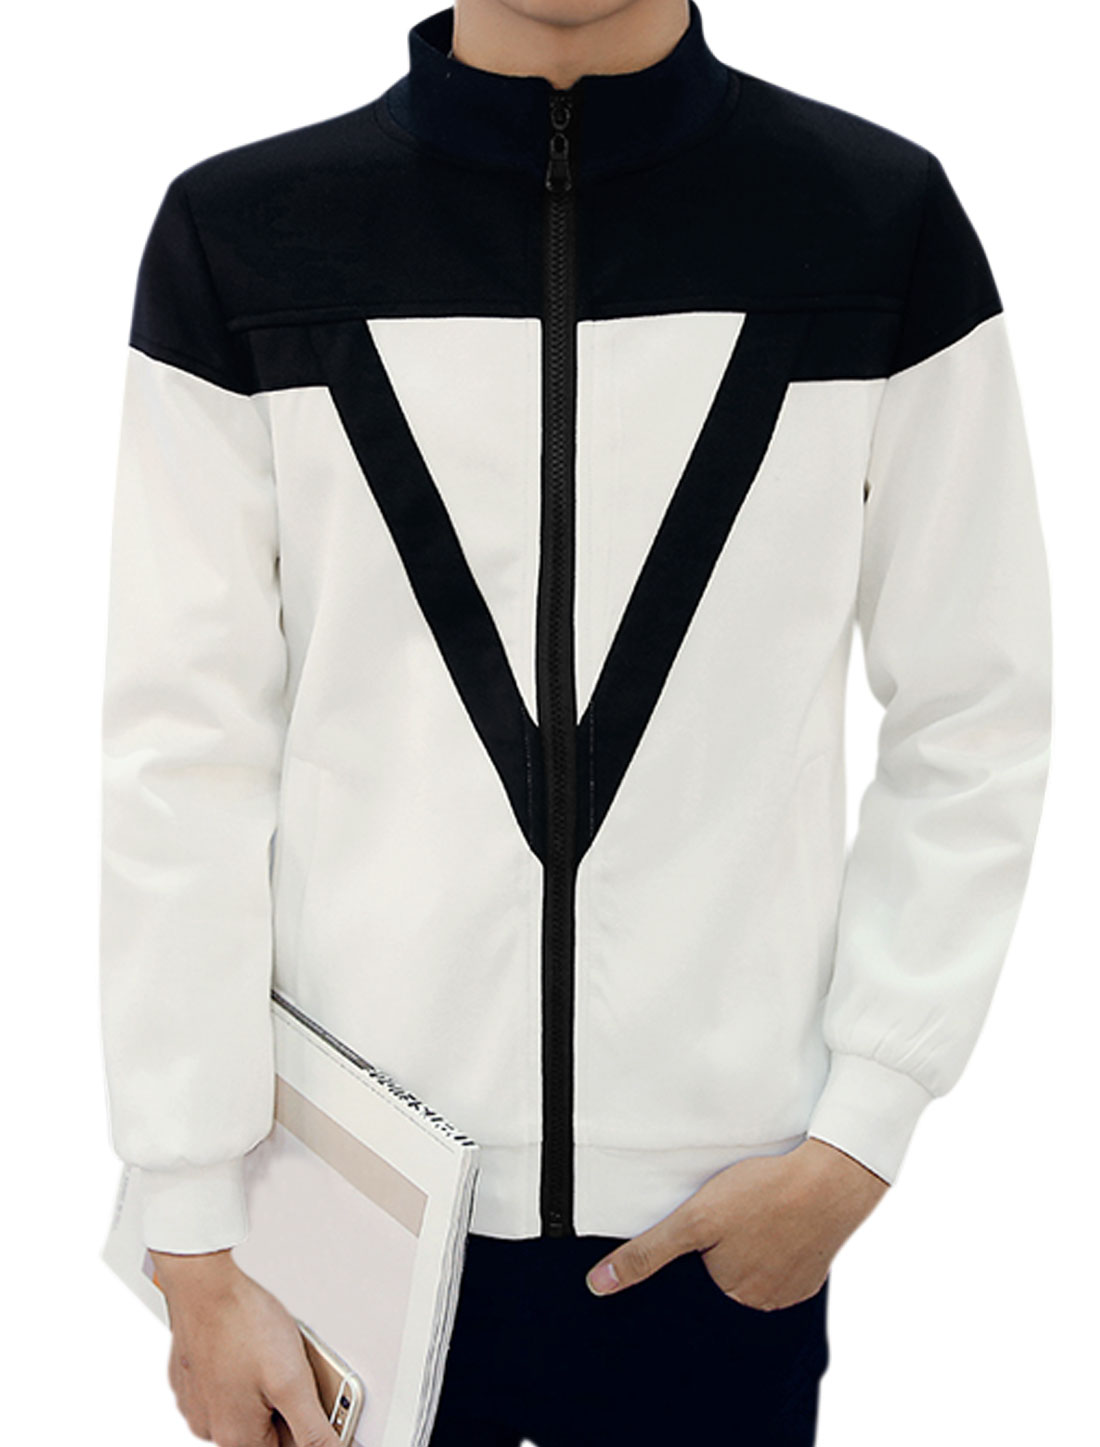 Men Long Sleeves Stand Collar Zip Up Contrast Color Jacket White Blue M